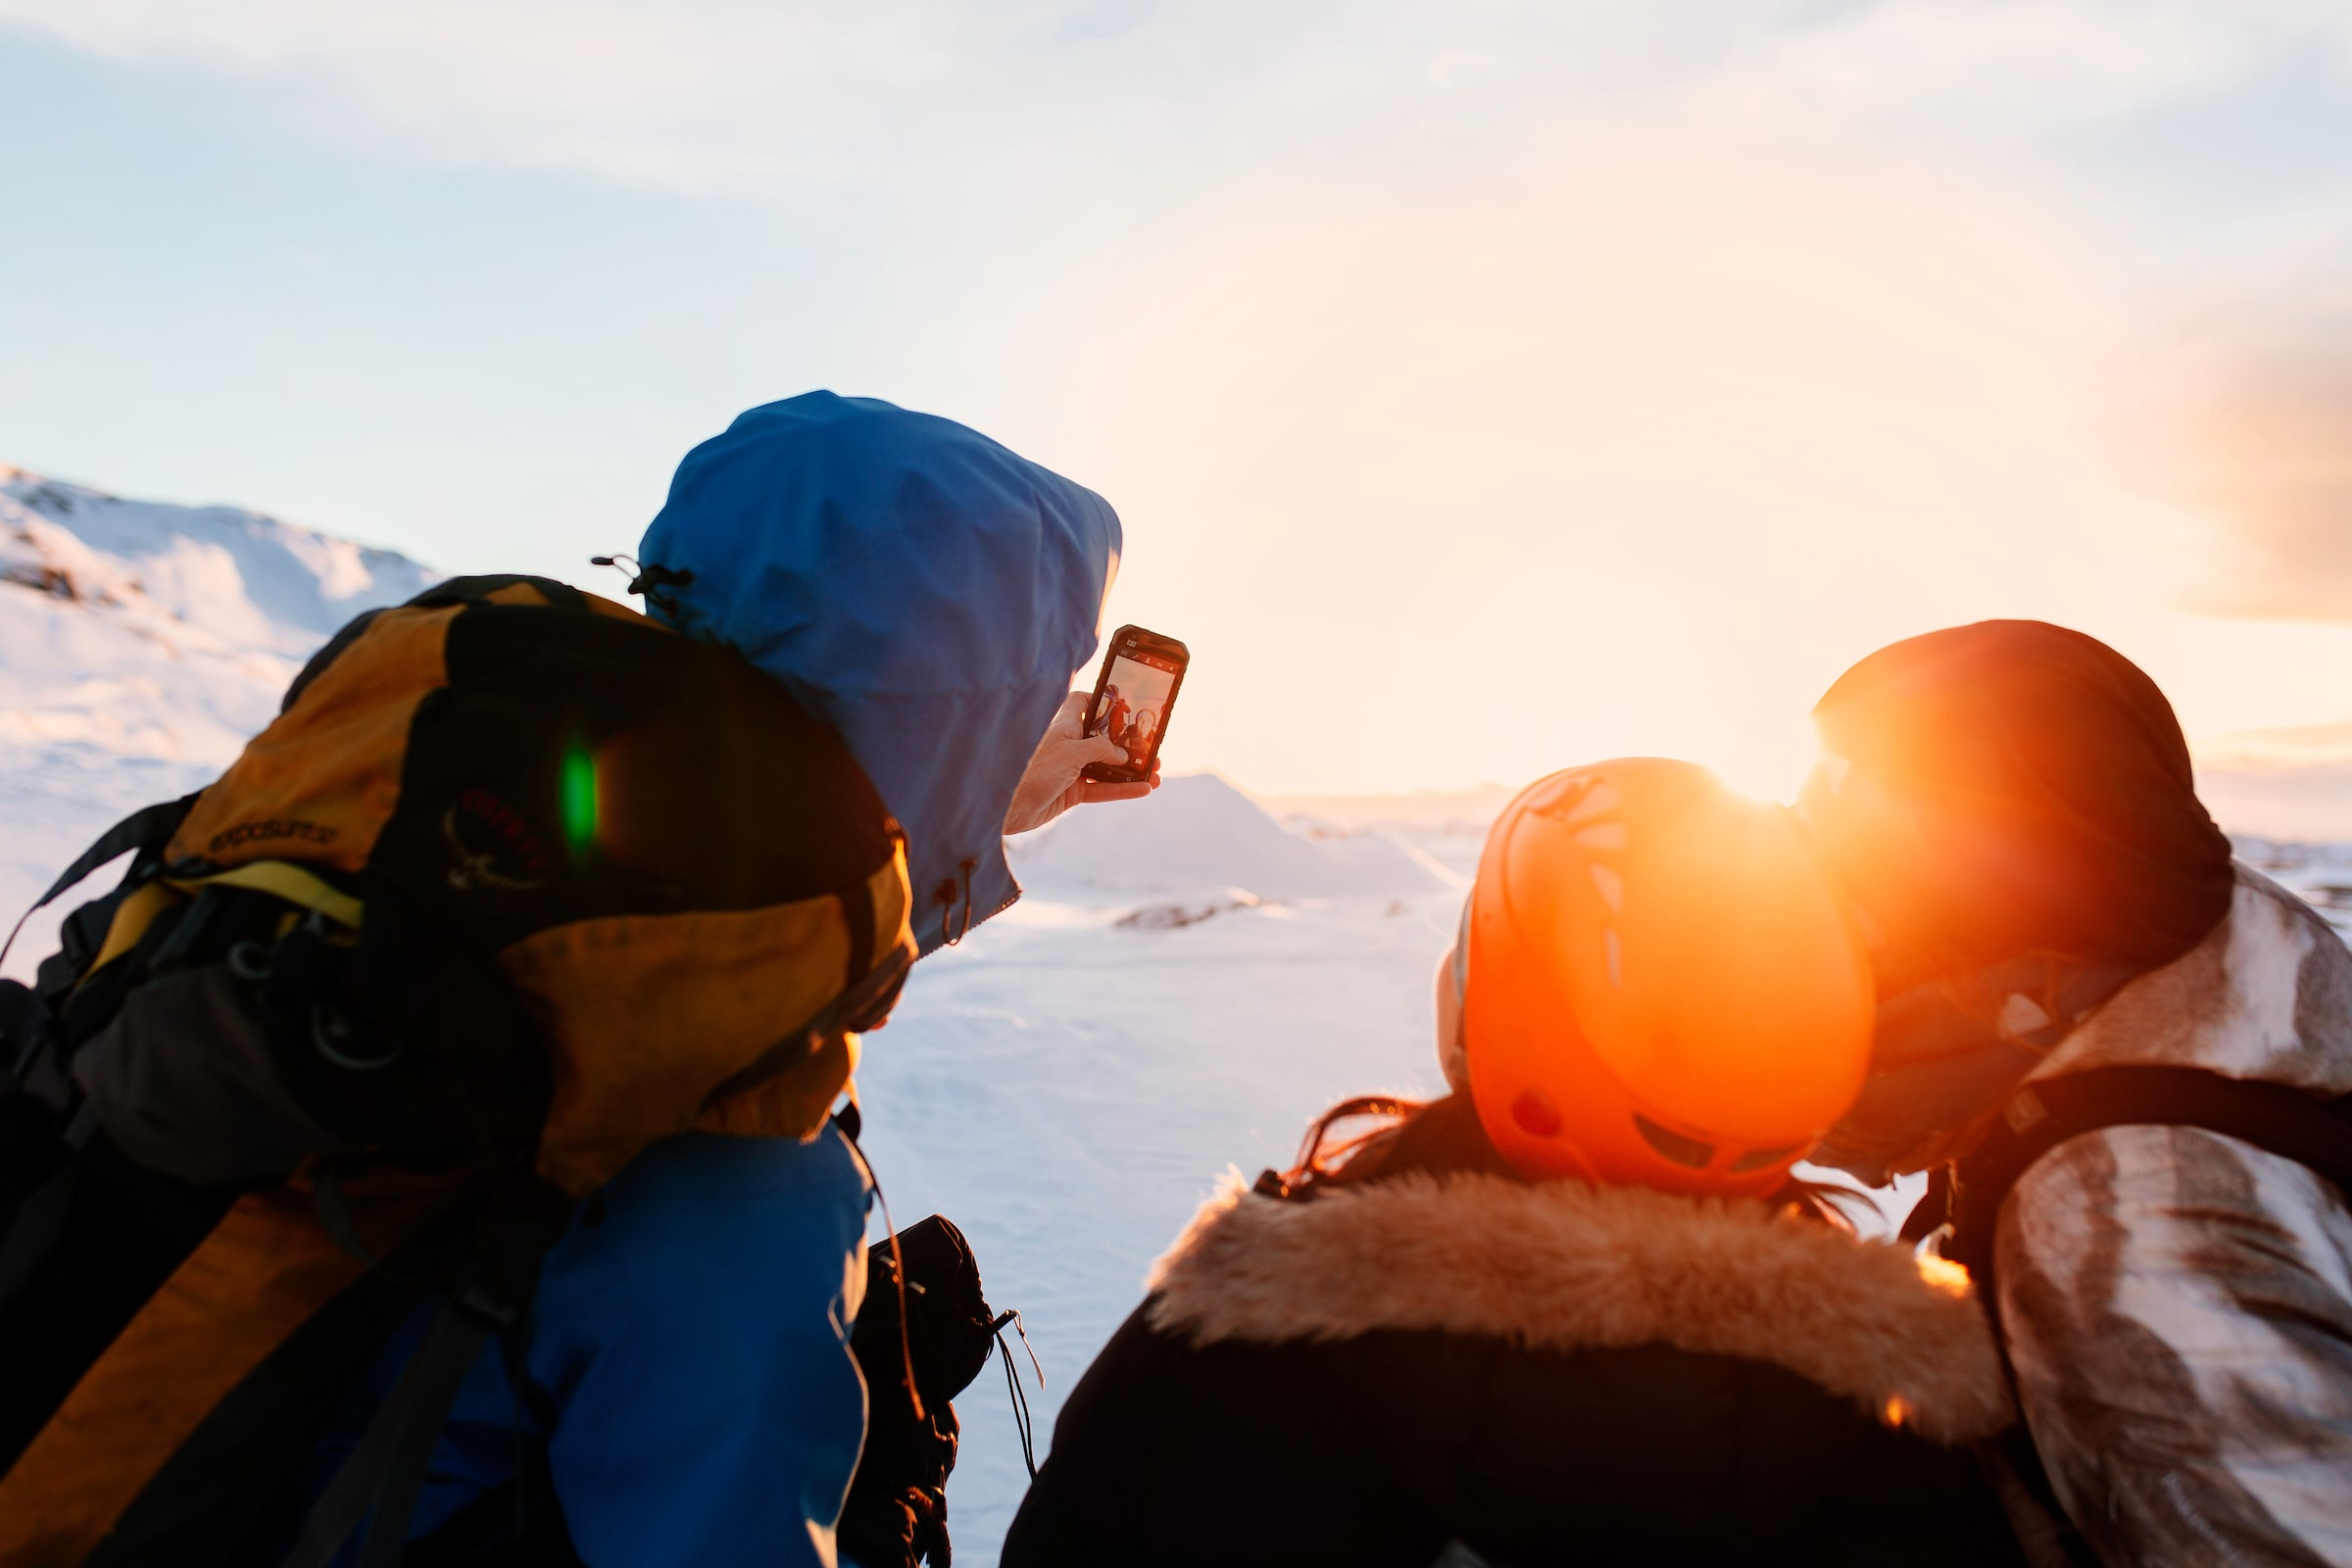 Sunset selfie on hike near Nuuk. Photo by Rebecca Gustafsson - Visit Greenland